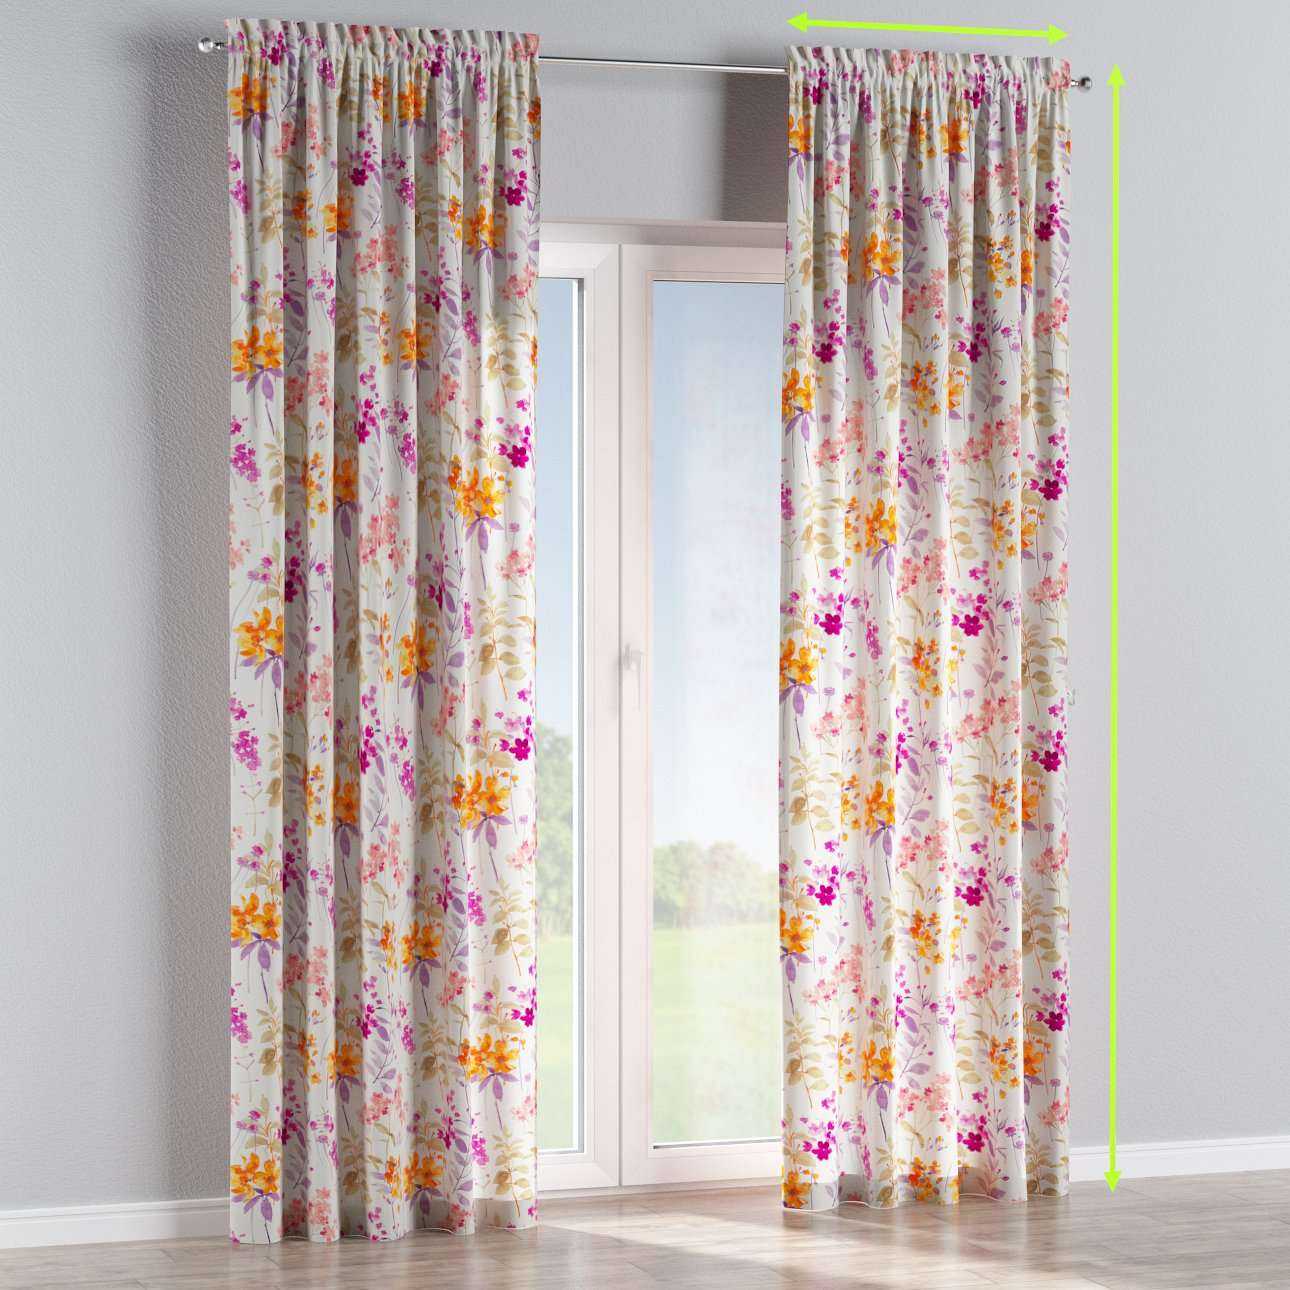 Slot and frill curtains in collection Monet, fabric: 140-04